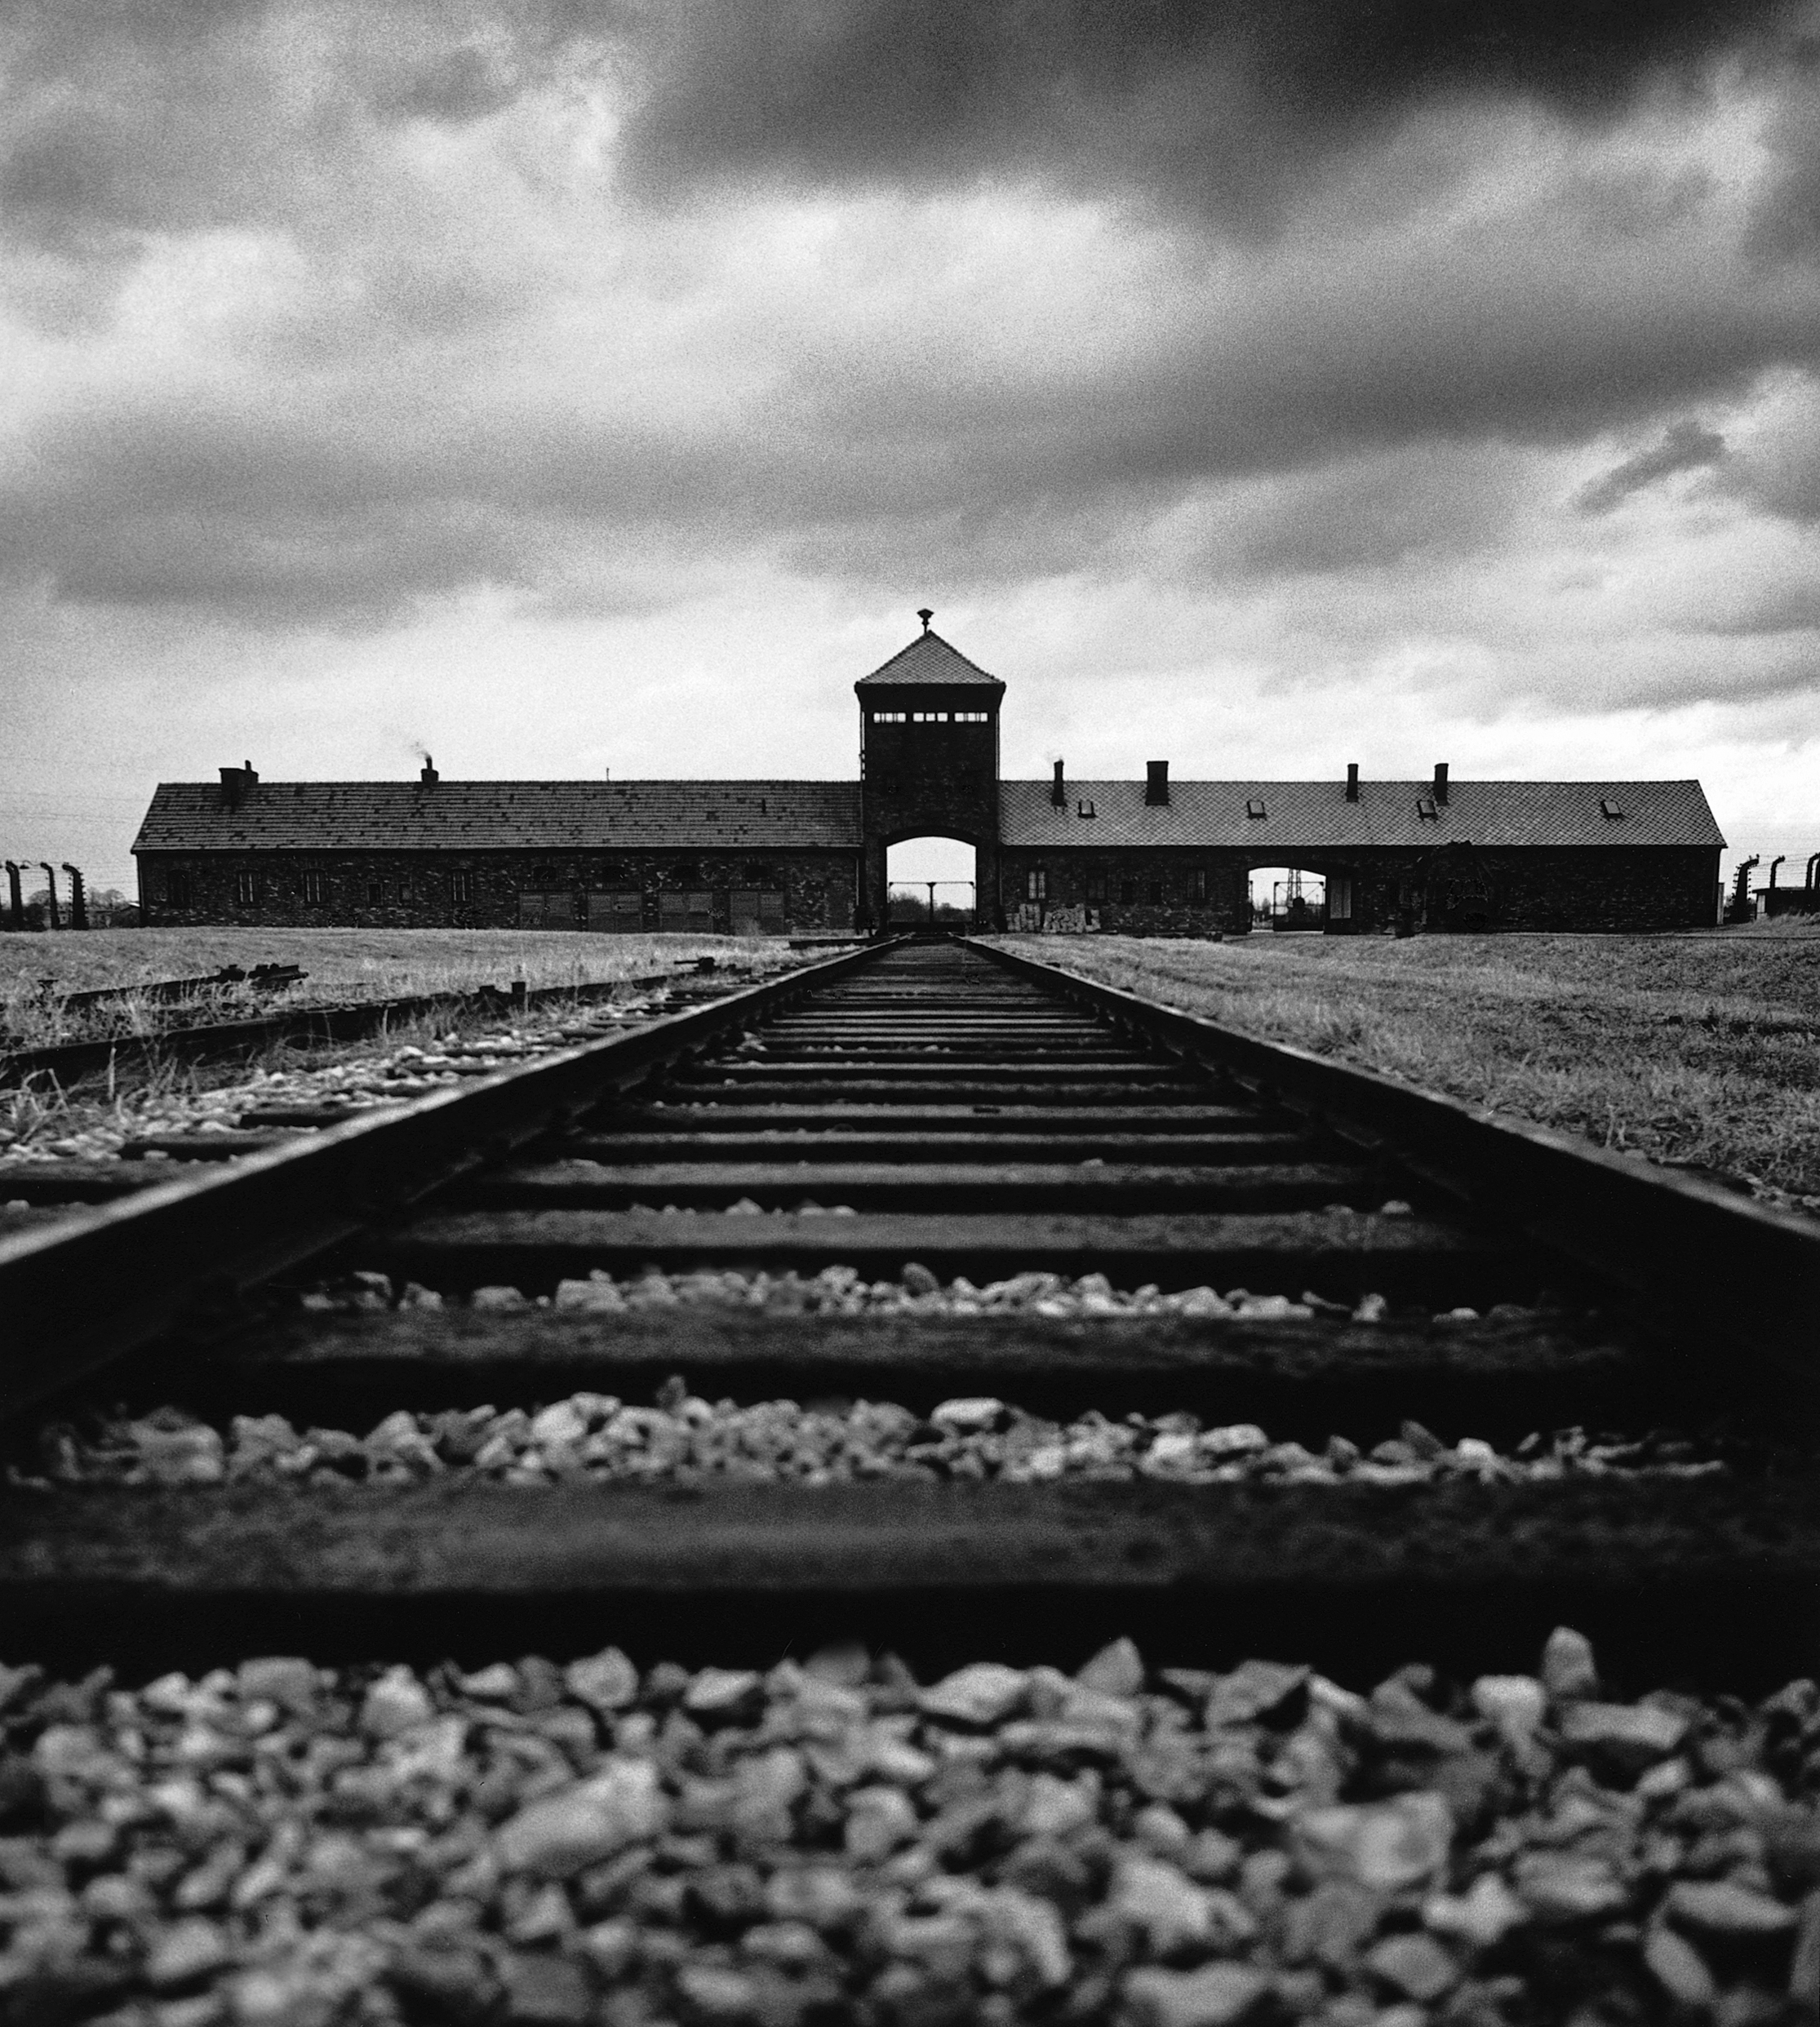 Where Was The Auschwitz Camp Located: Michael Kenna Retrospective, Part 2, Opens Jan. 11 At TAM